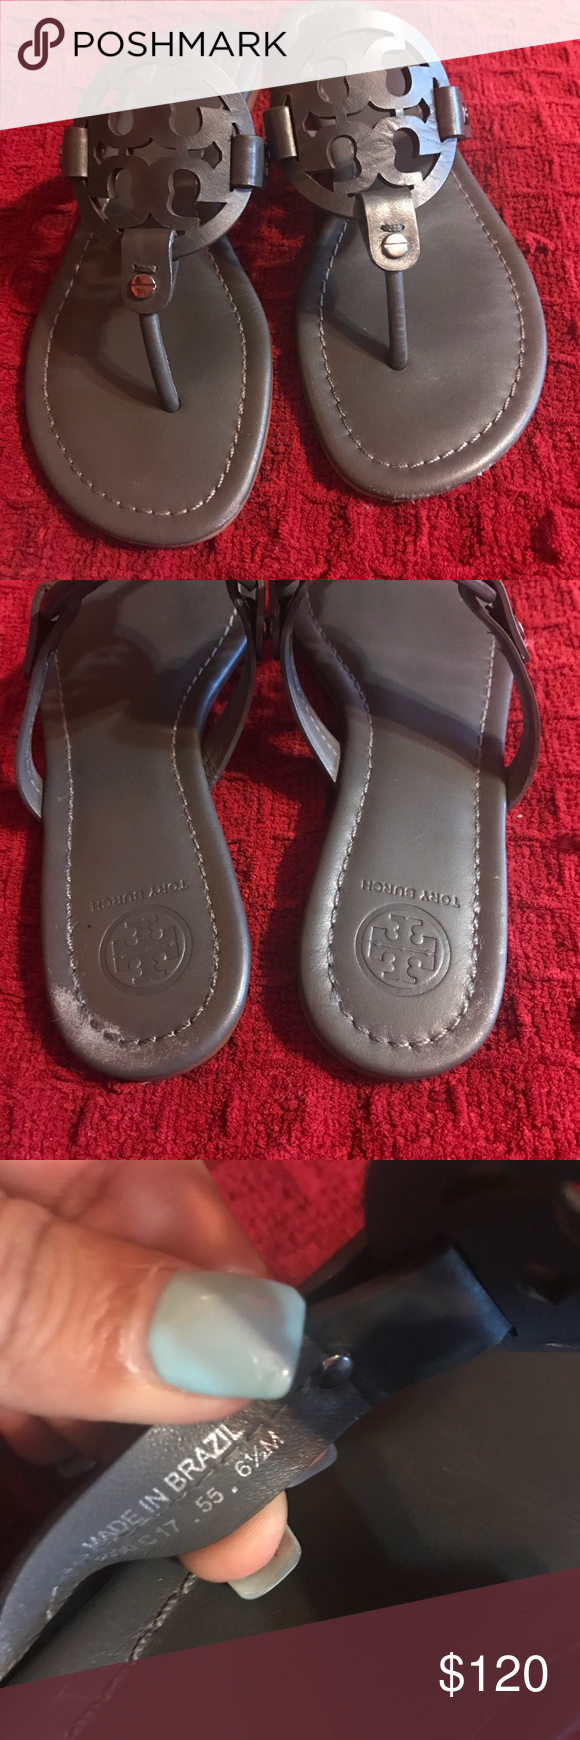 81ebd464b Tory Burch Miller Sandals In good conditions Tory Burch sandals in the dark  grey color.